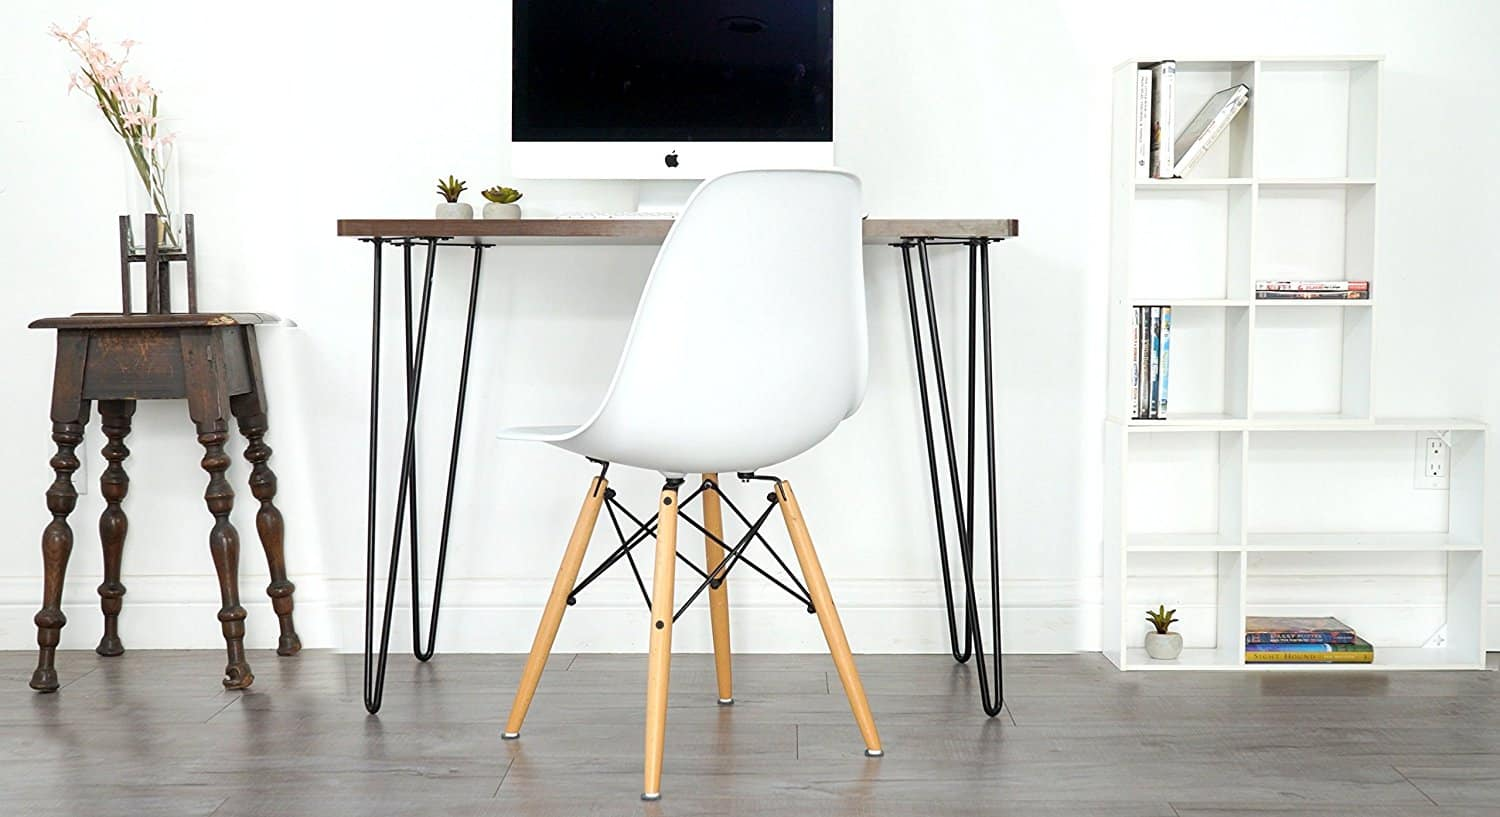 small desk for home office. Photo Of A Stylish Small Desk In The Living Room. For Home Office M